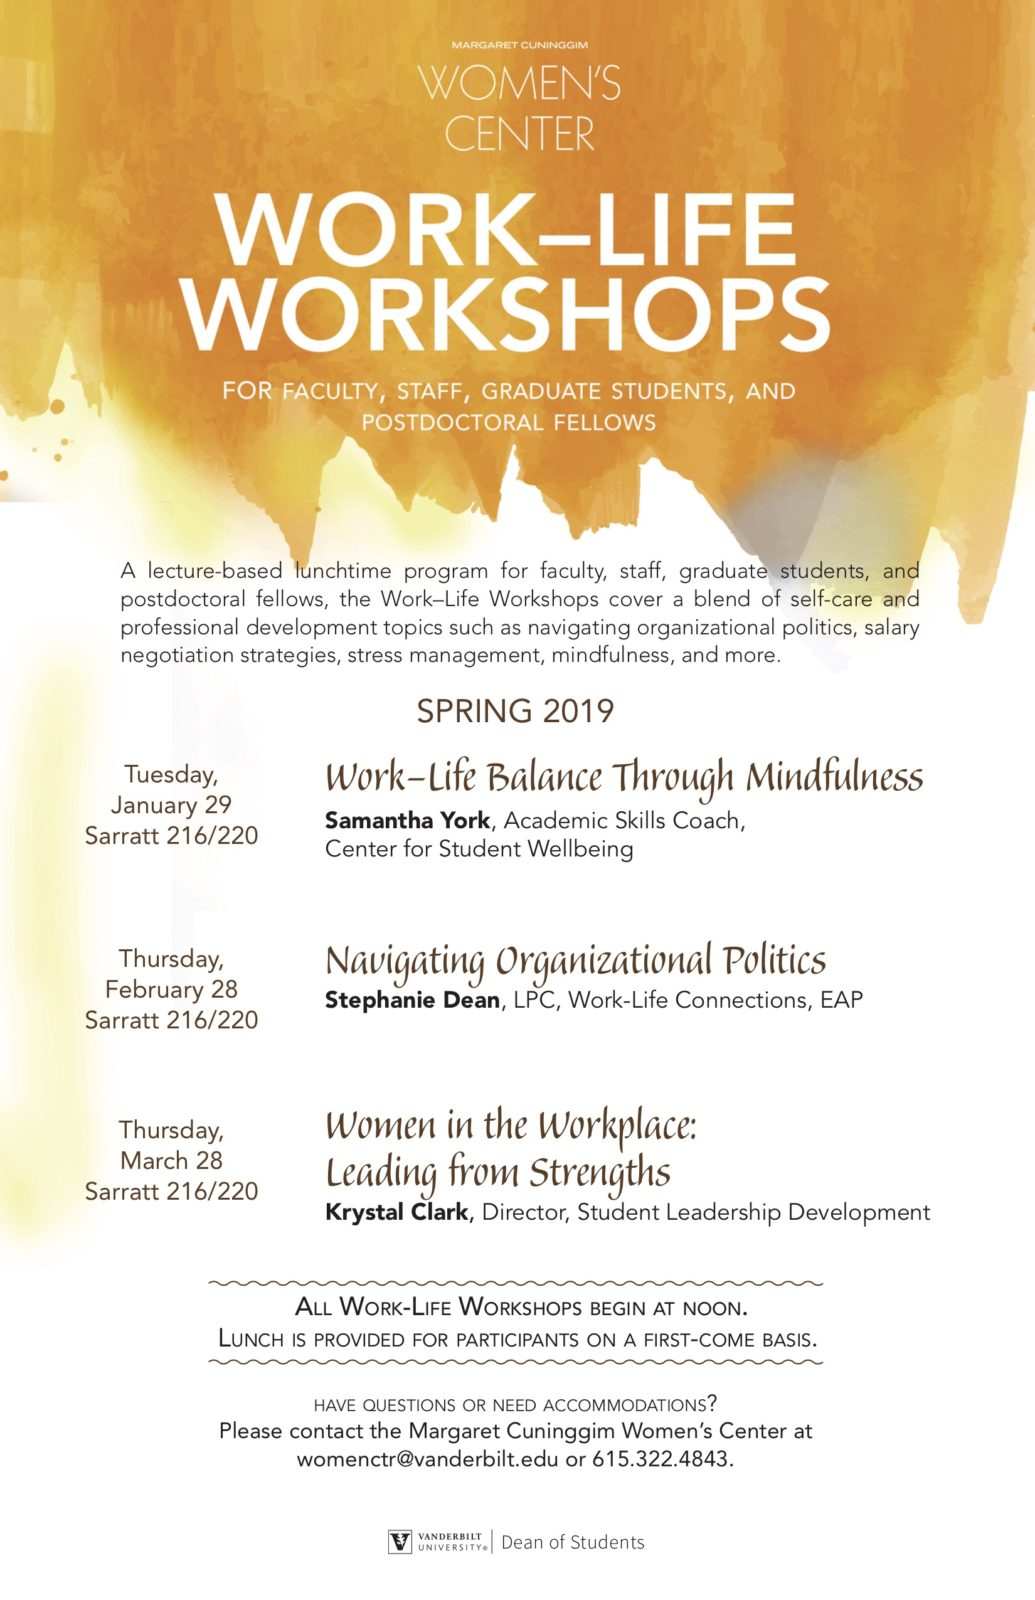 Poster for Work Life Workshop event